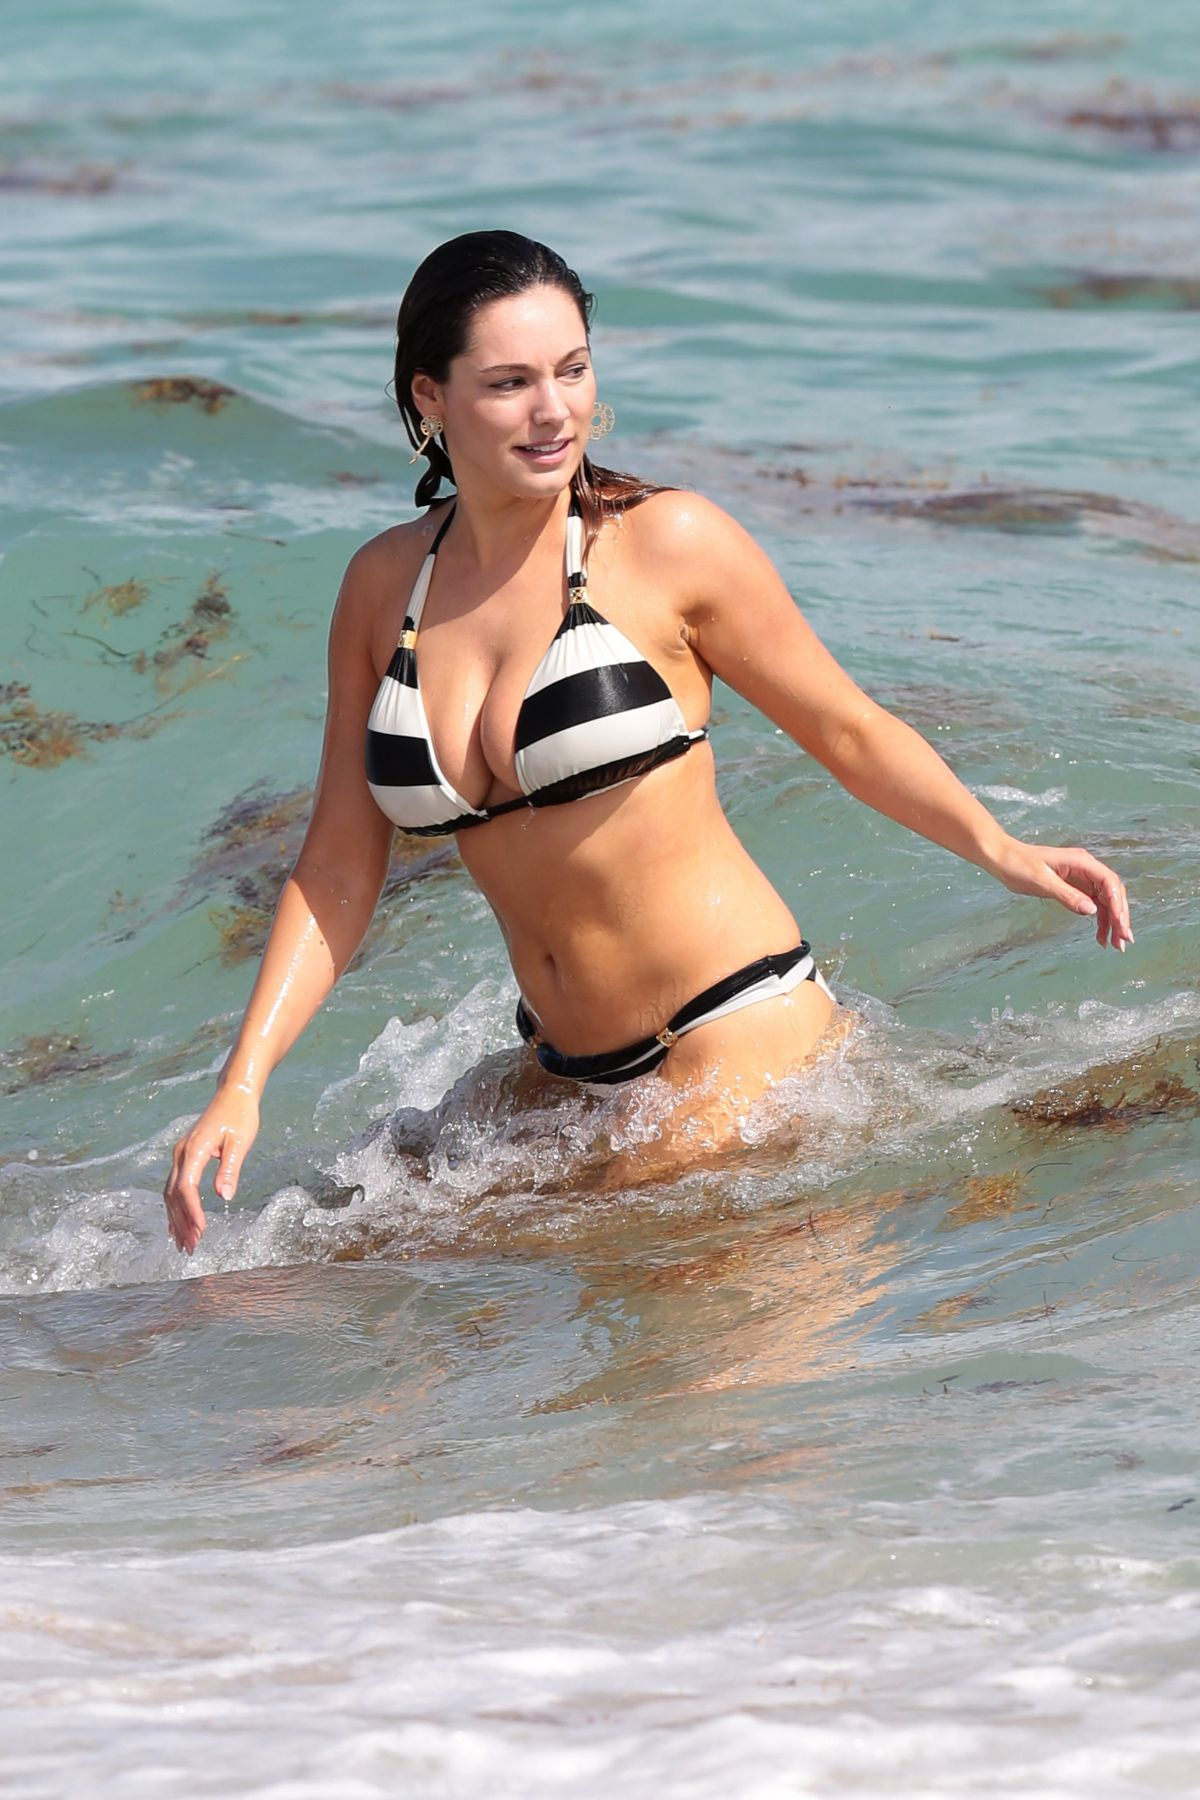 Kelly Brook in Patterned Bikini on the beach in Thailand Pic 23 of 35